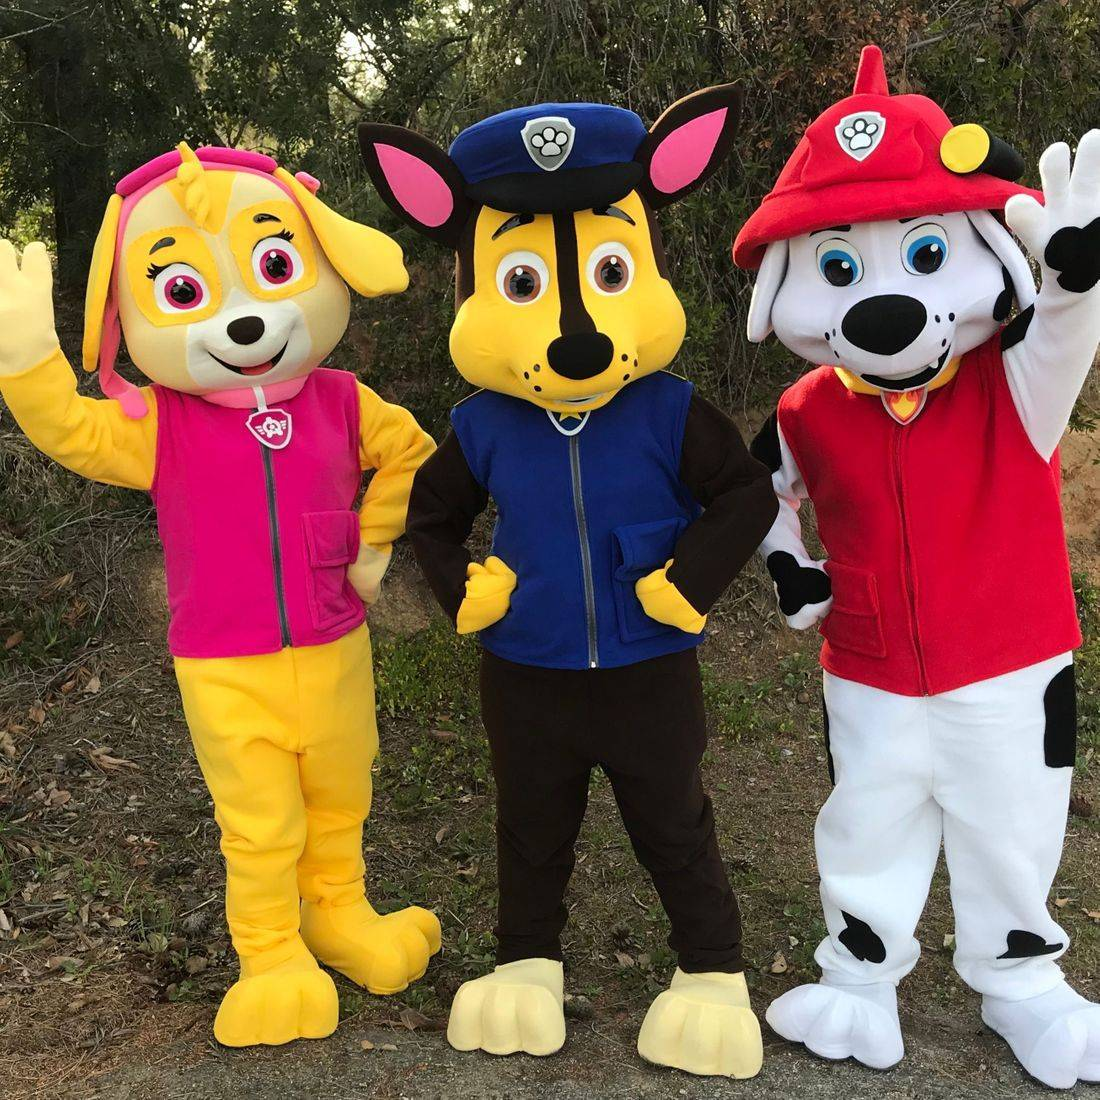 paw patrol, paw patroll,paw patrol party, paw patroll party, marshall,chase party, riverside,character,princess party, kid's party entertainment